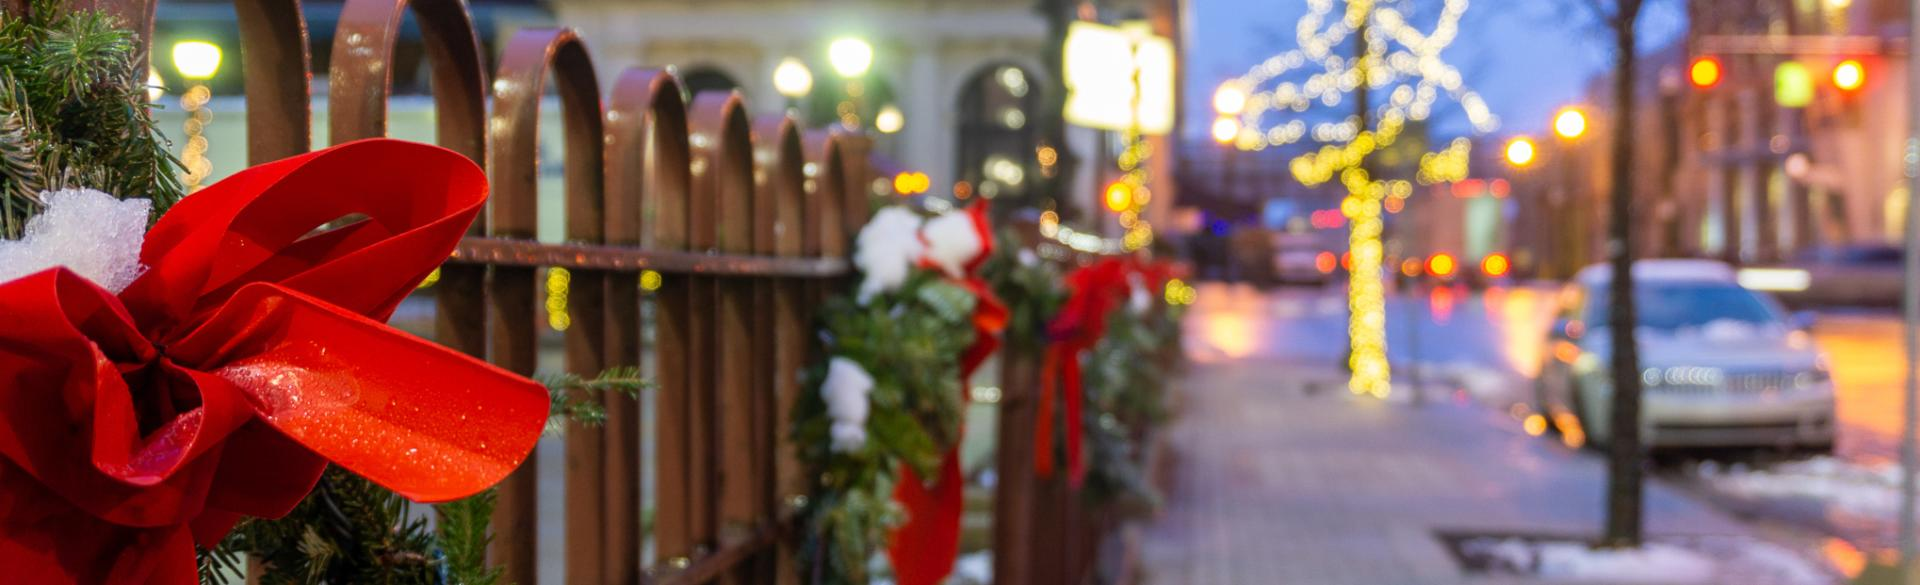 Fence decorated with bows and garland for the holidays.